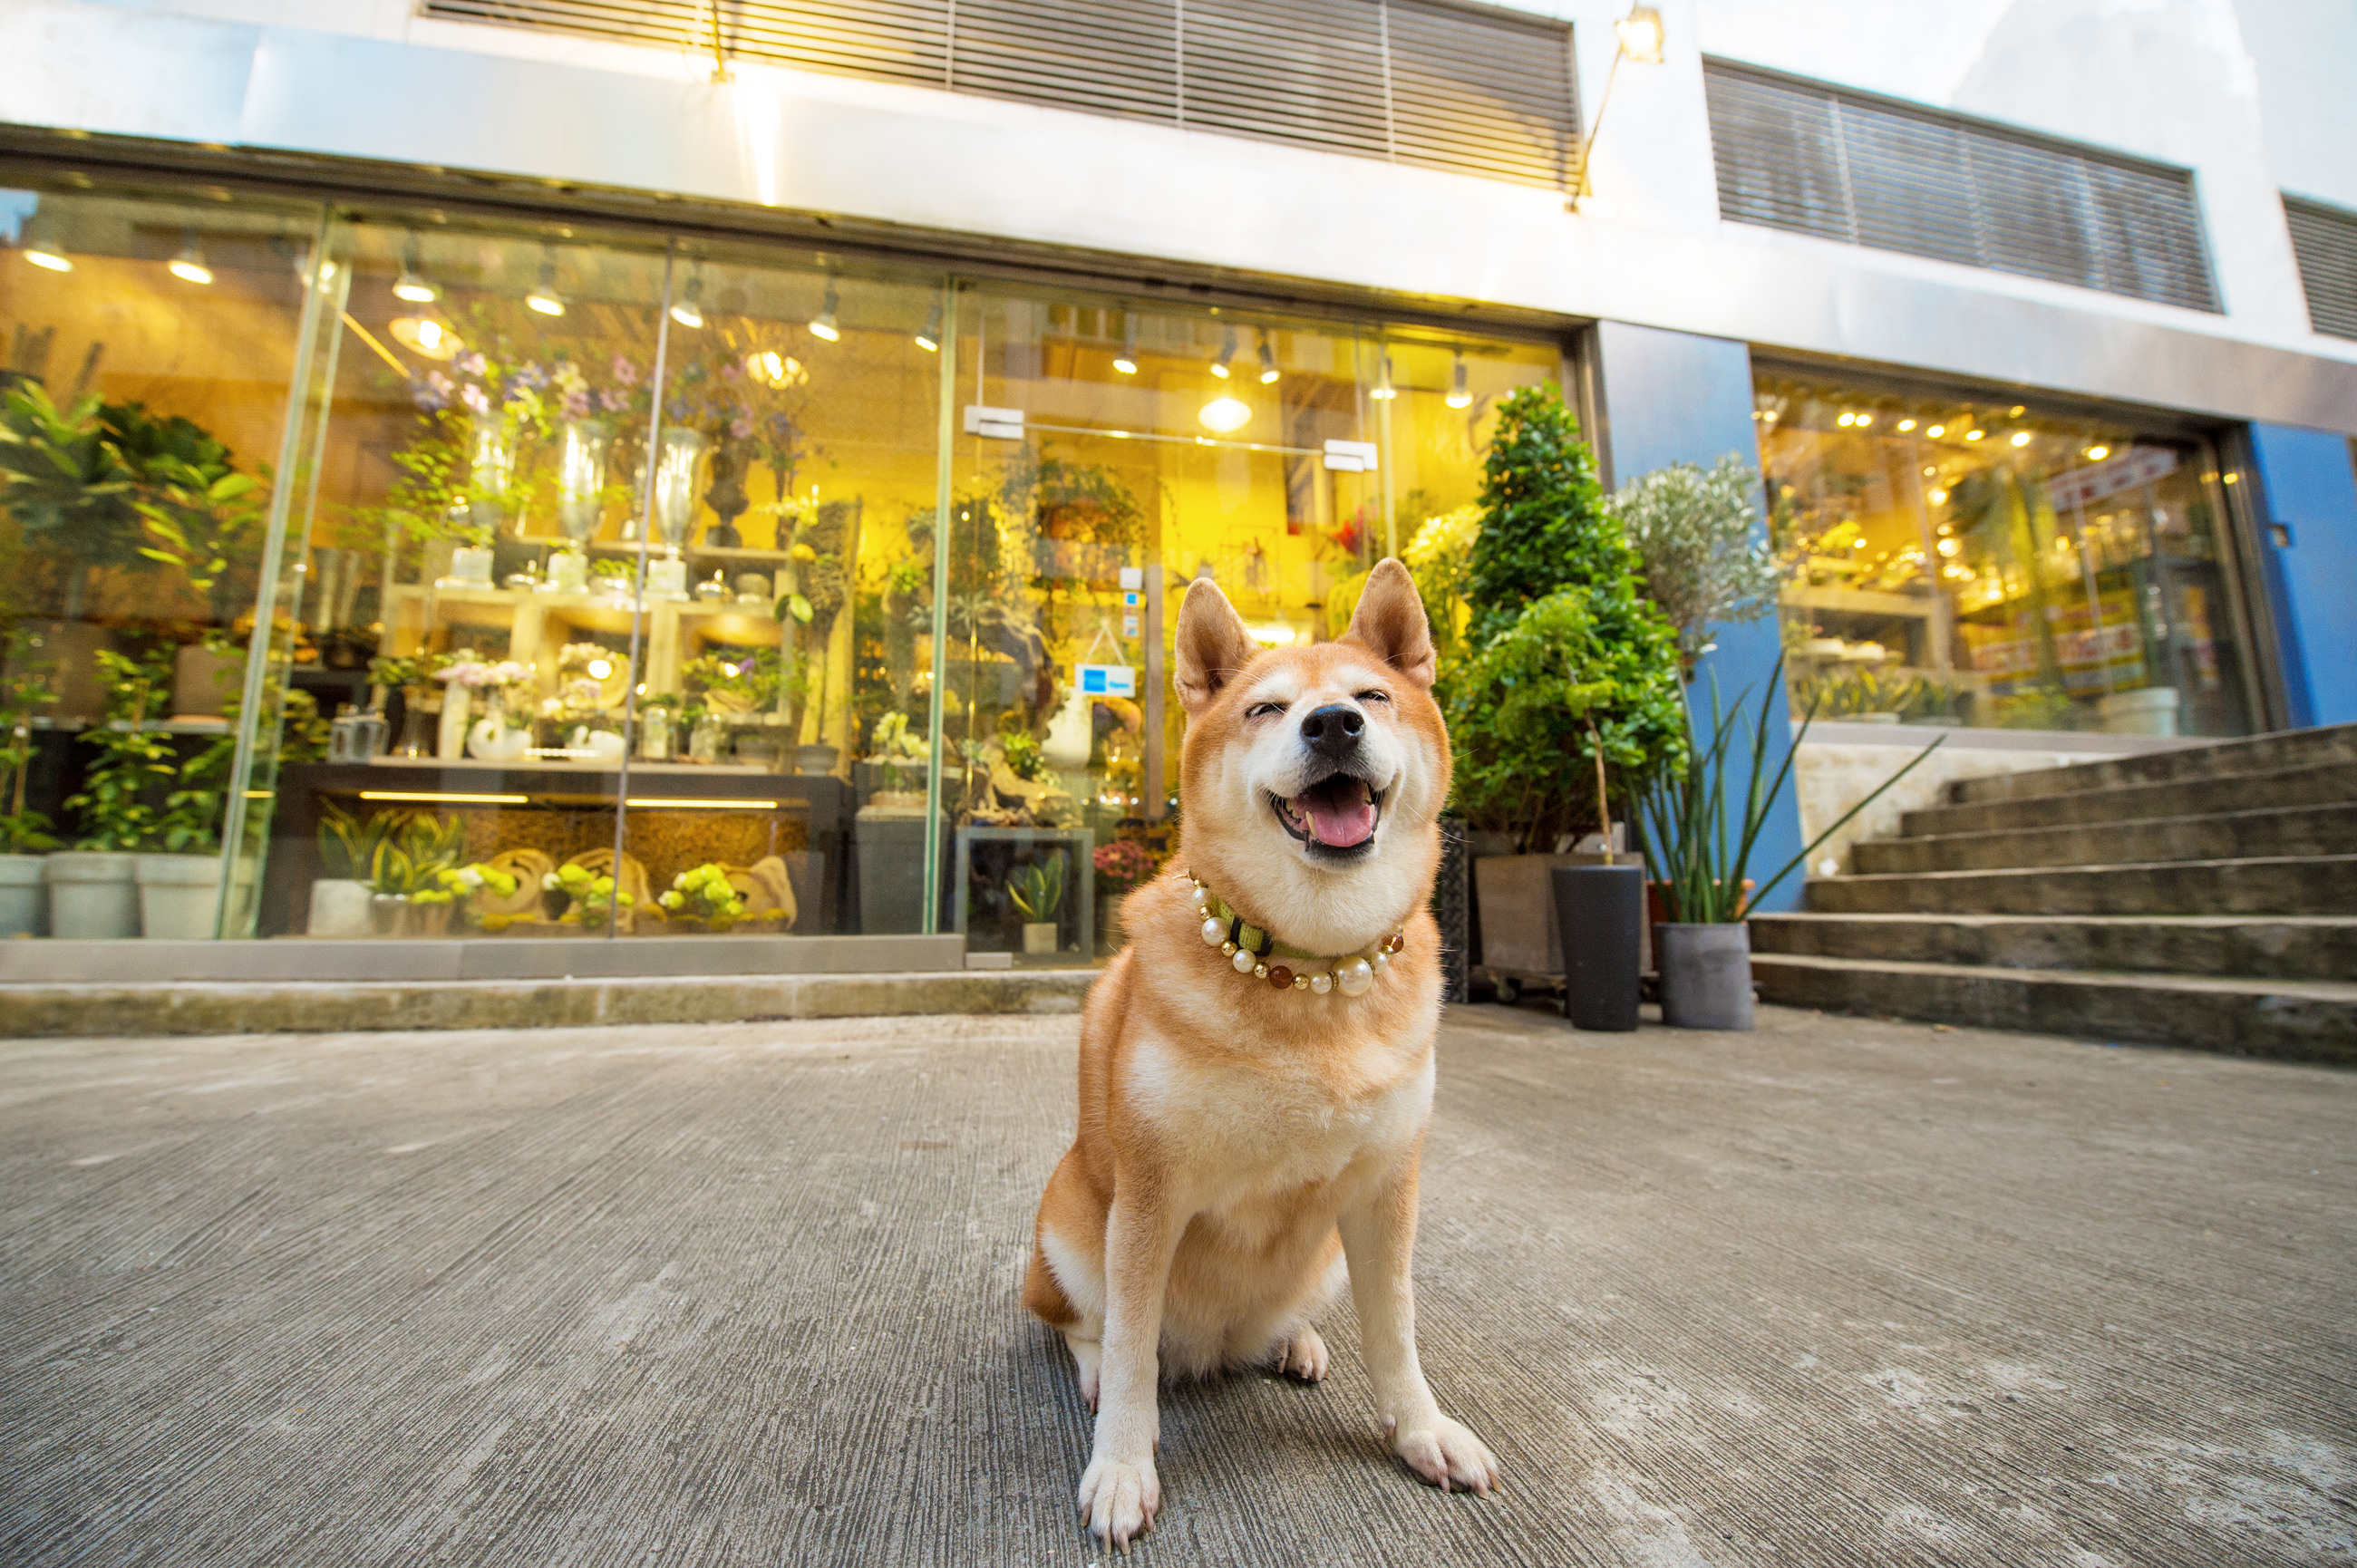 Yobi the Shiba Inu smiling for the camera in Old Town Central, Hong Kong.